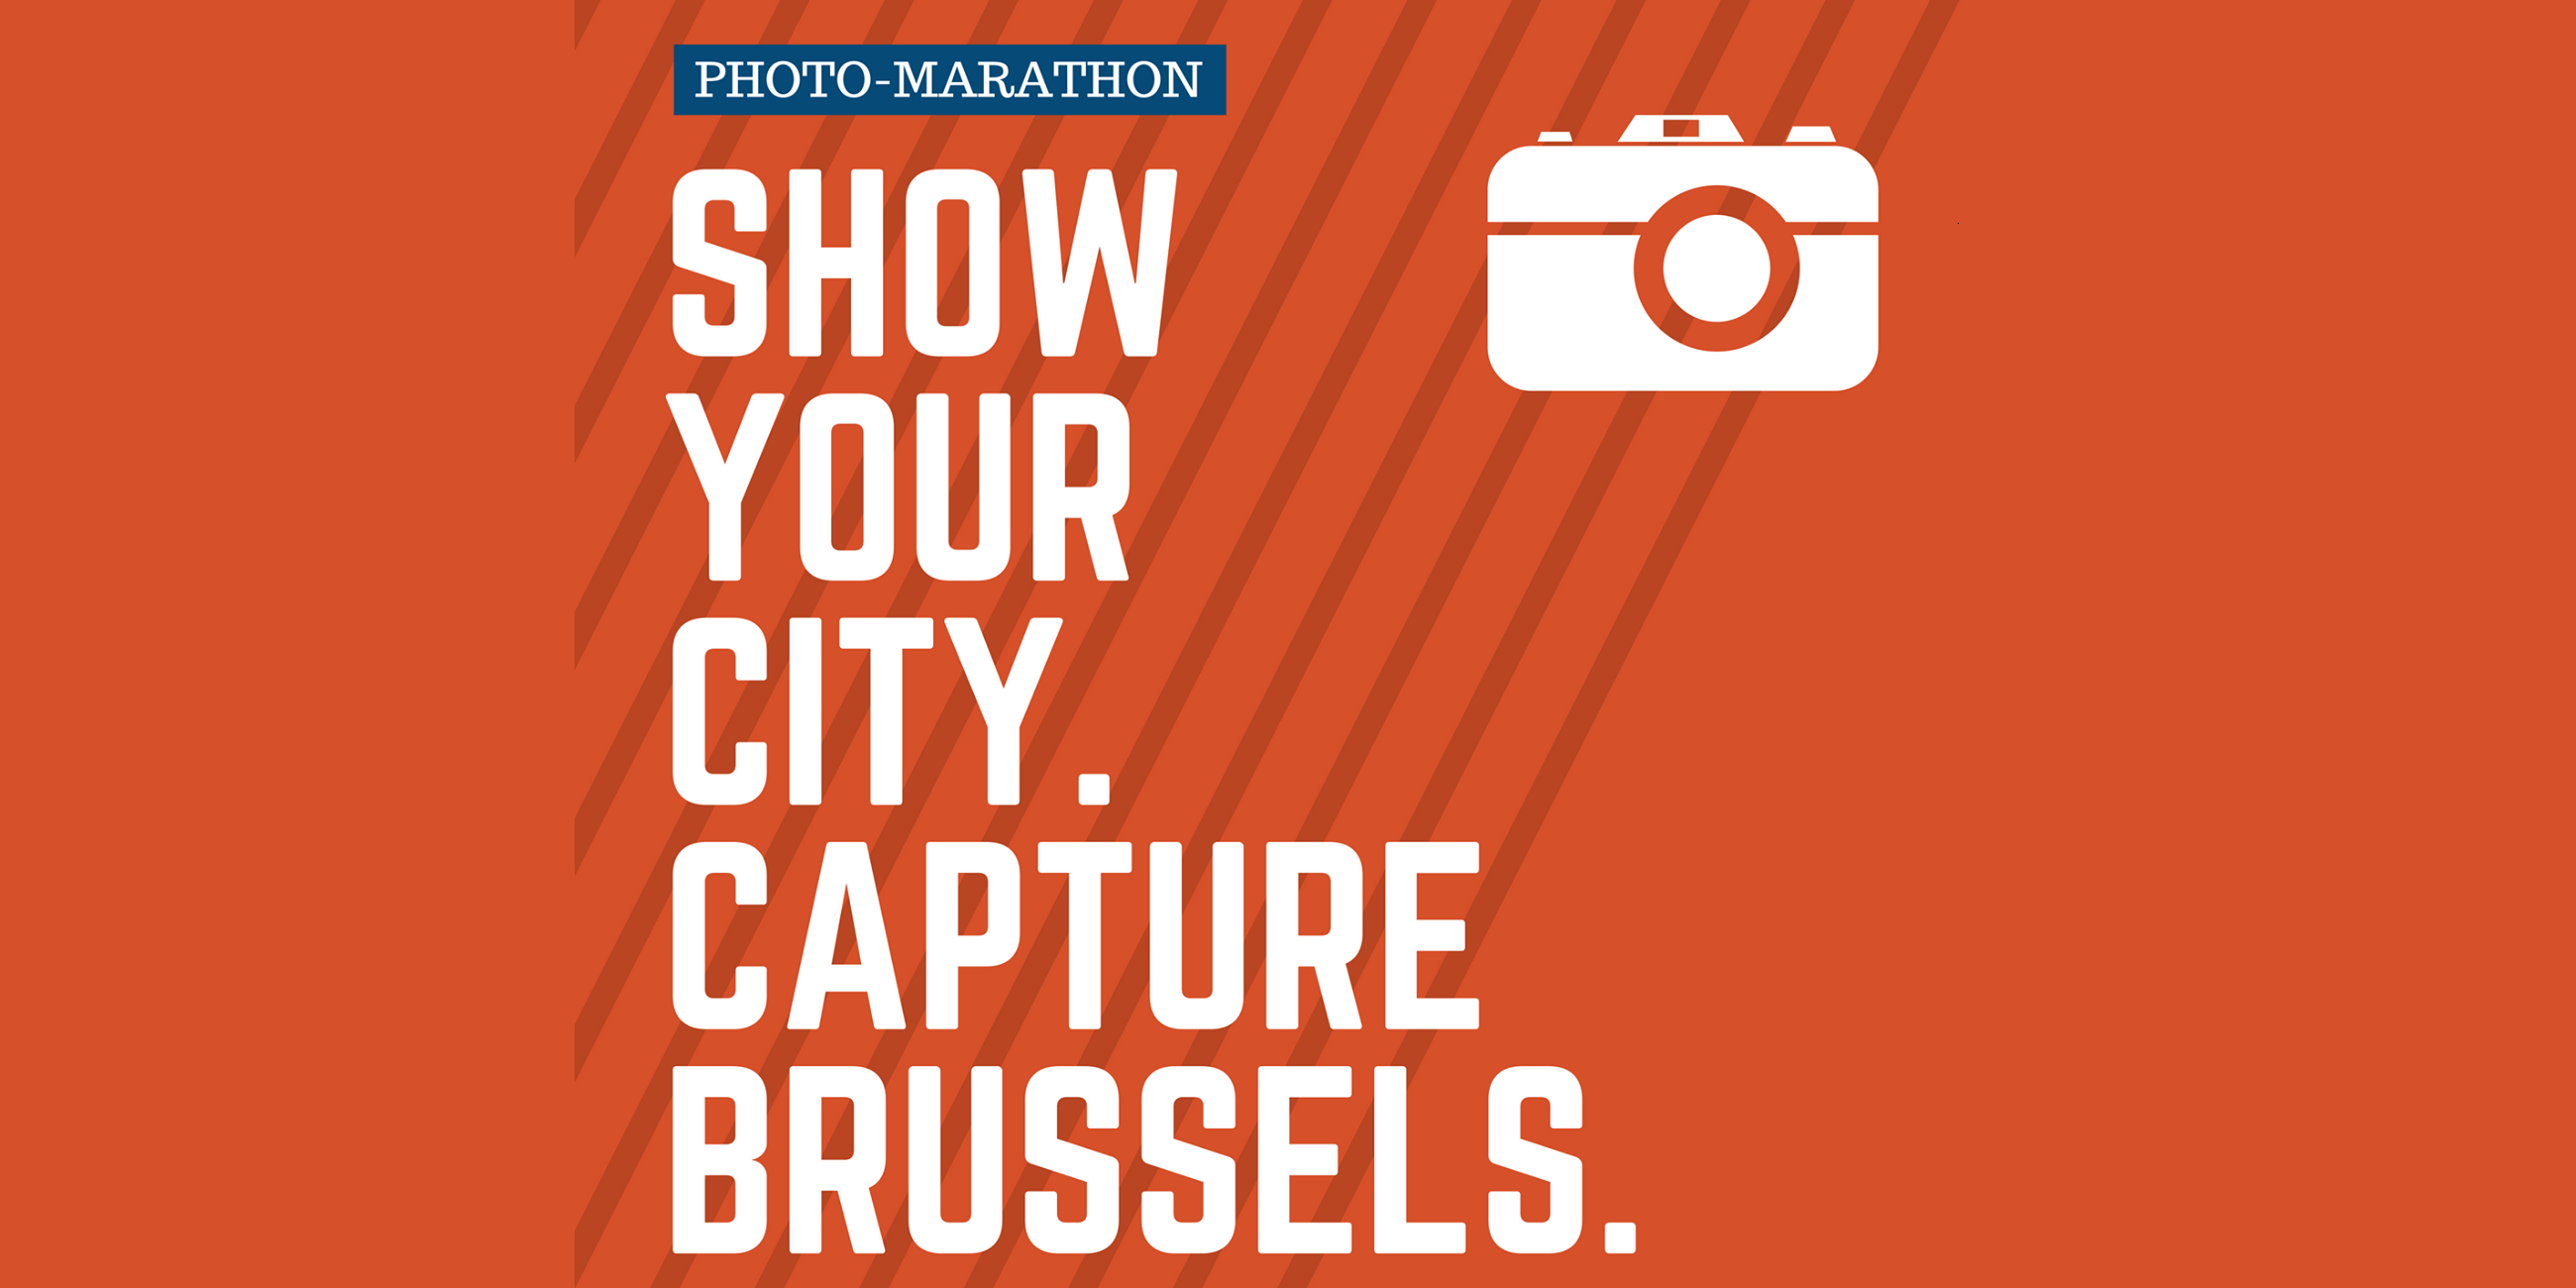 Fotomarathon Capture Brussels